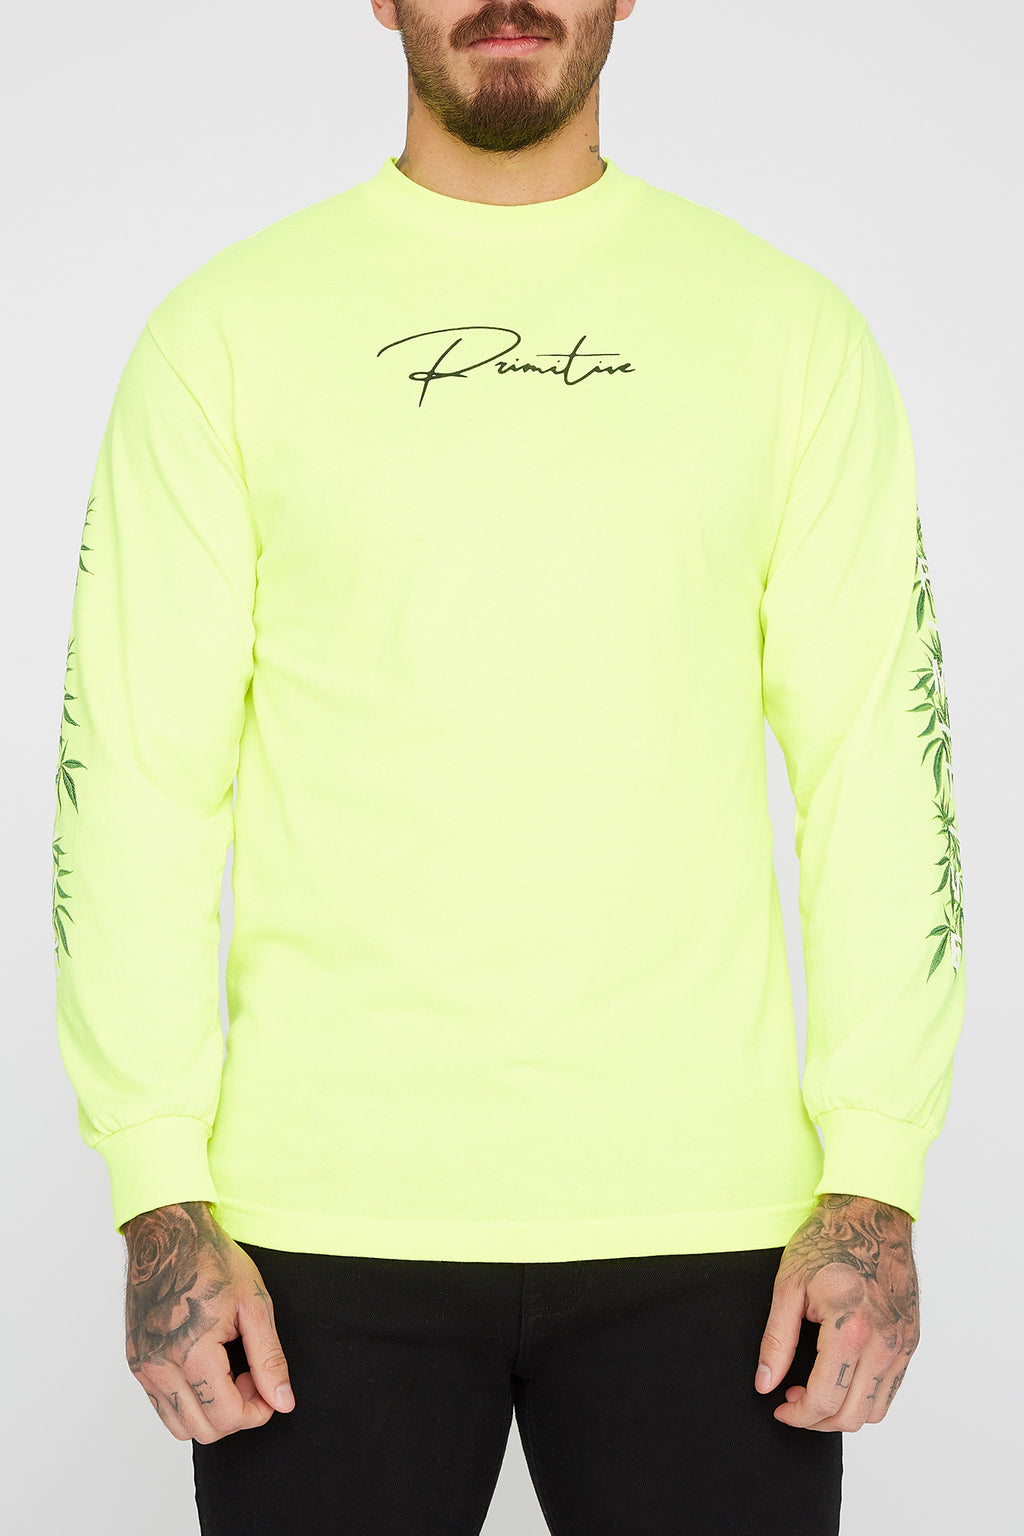 Primitive Mens Fluorescent Long Sleeve Shirt